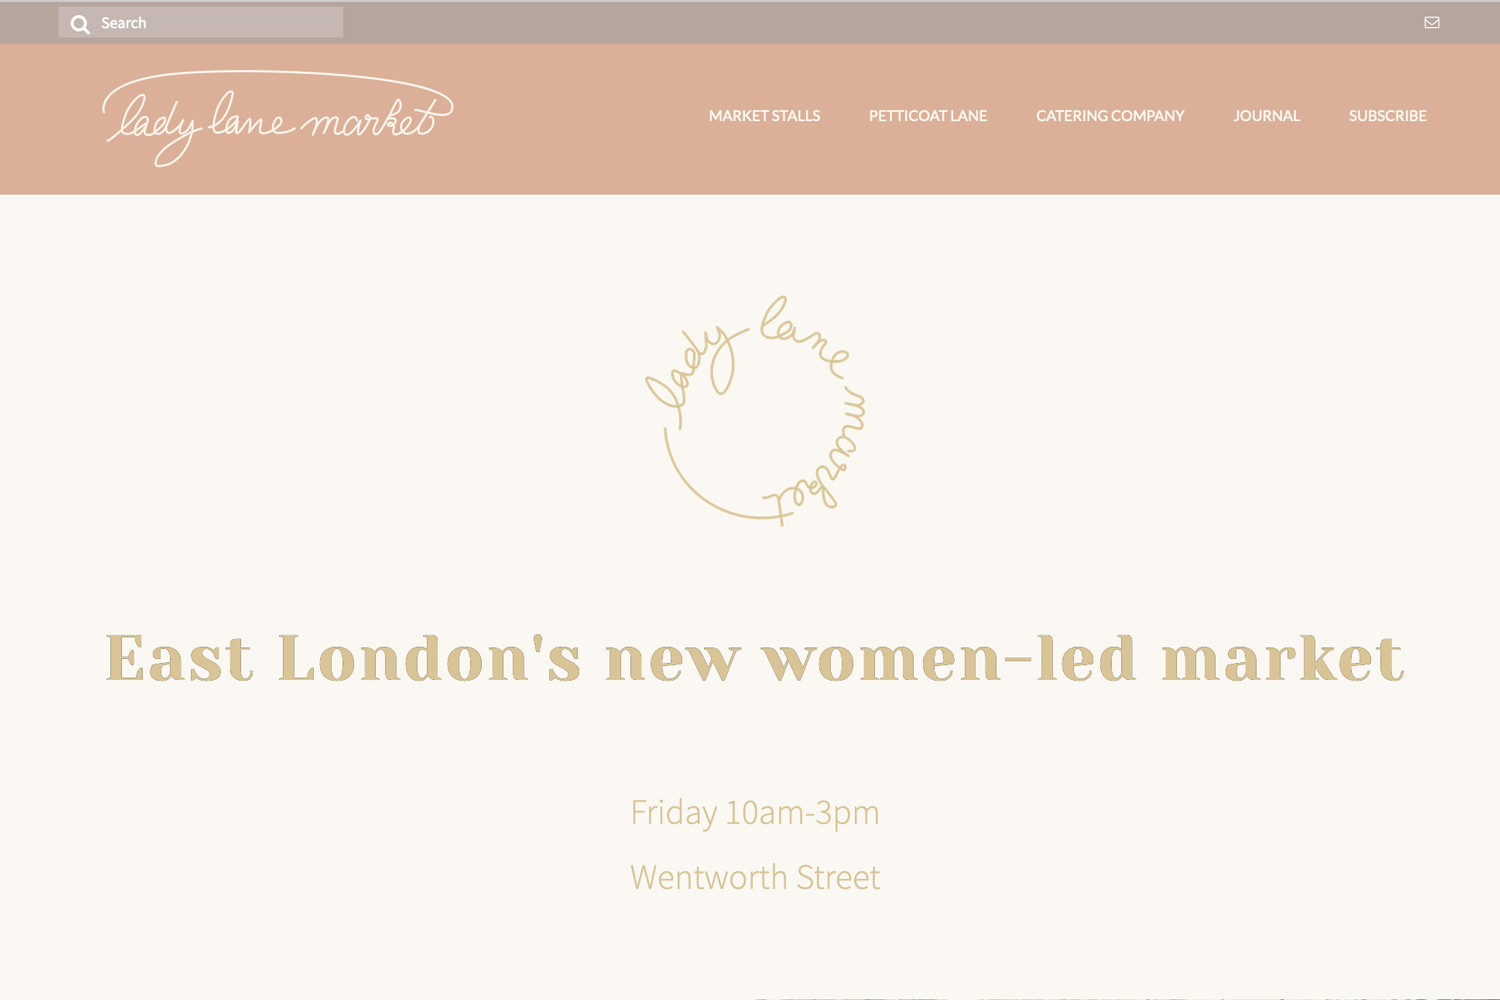 Website design for Lady Lane Market